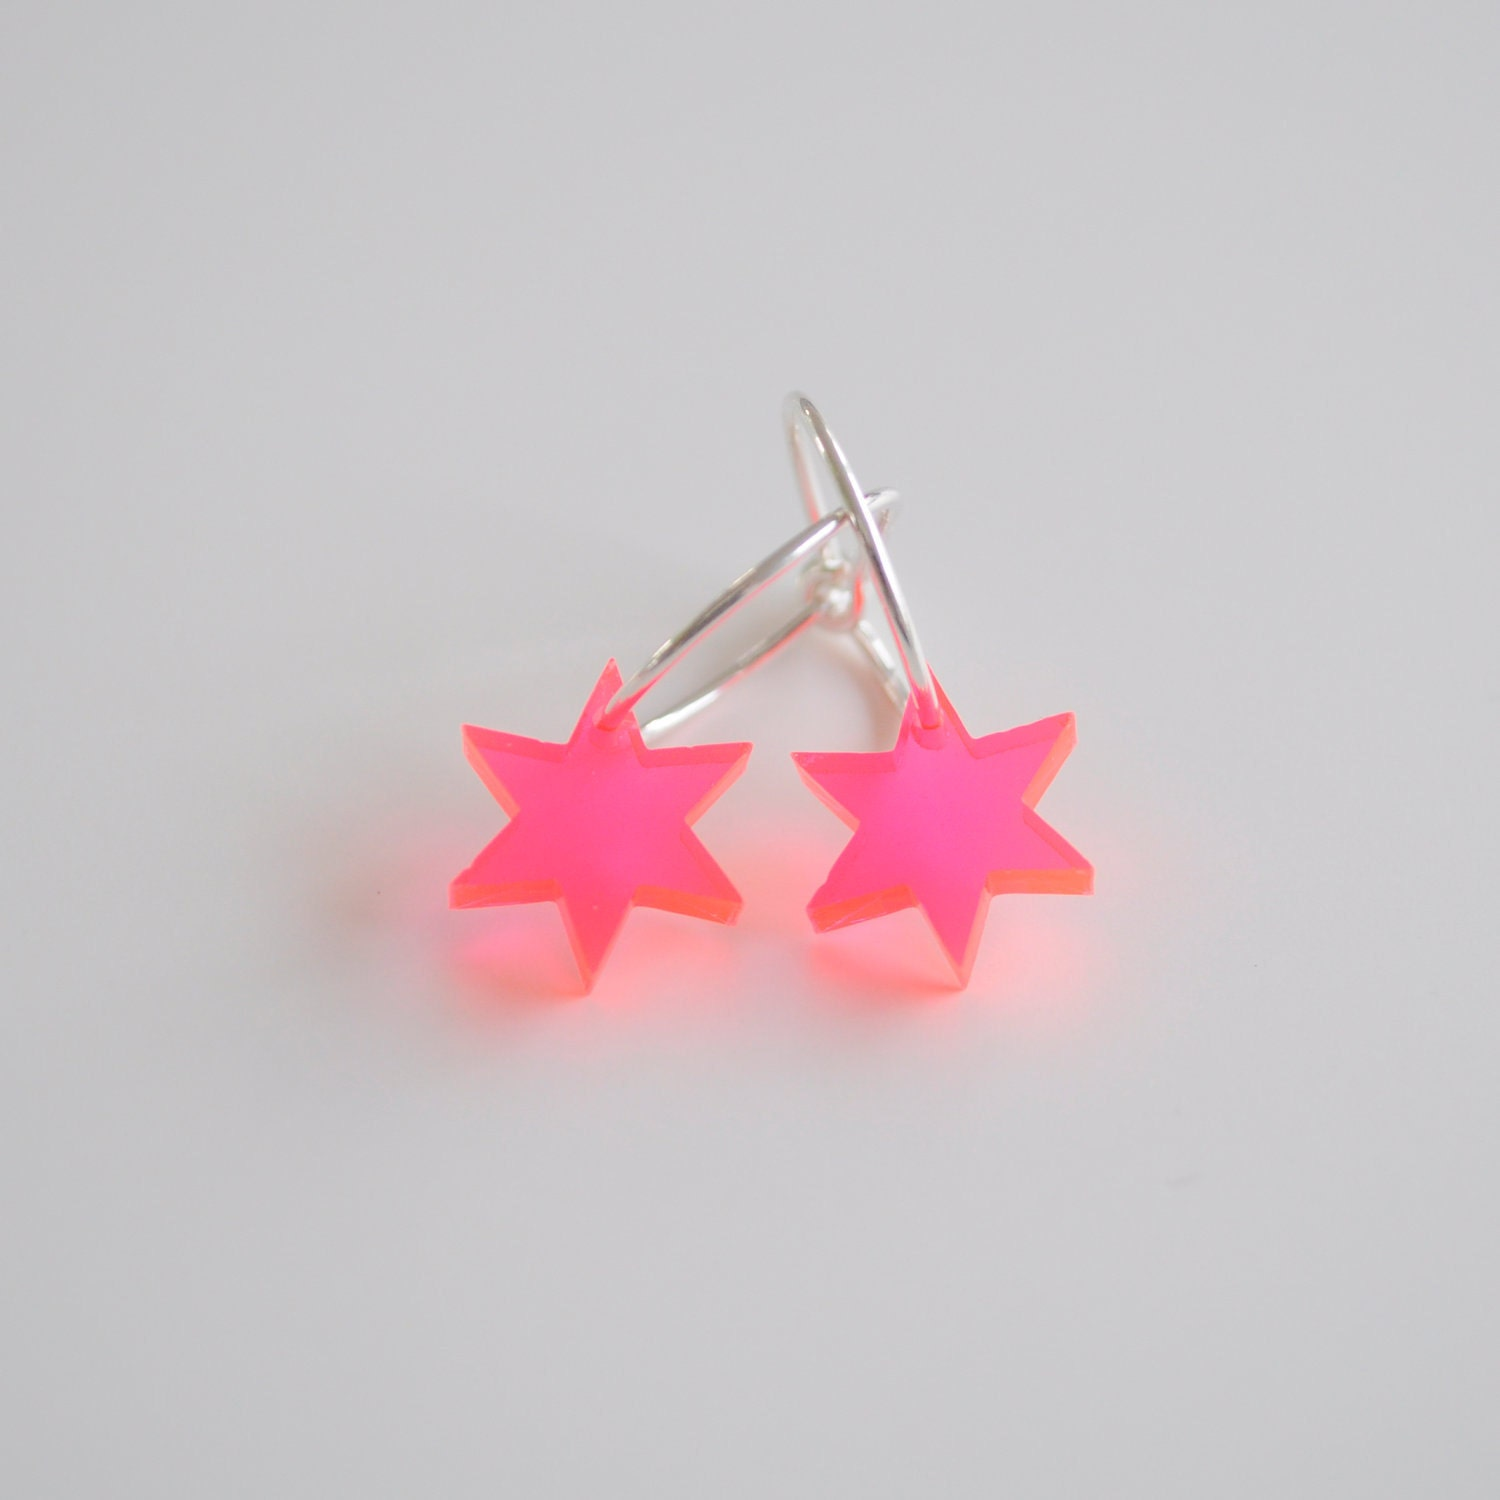 Little red acrylic star, sterling silver earrings